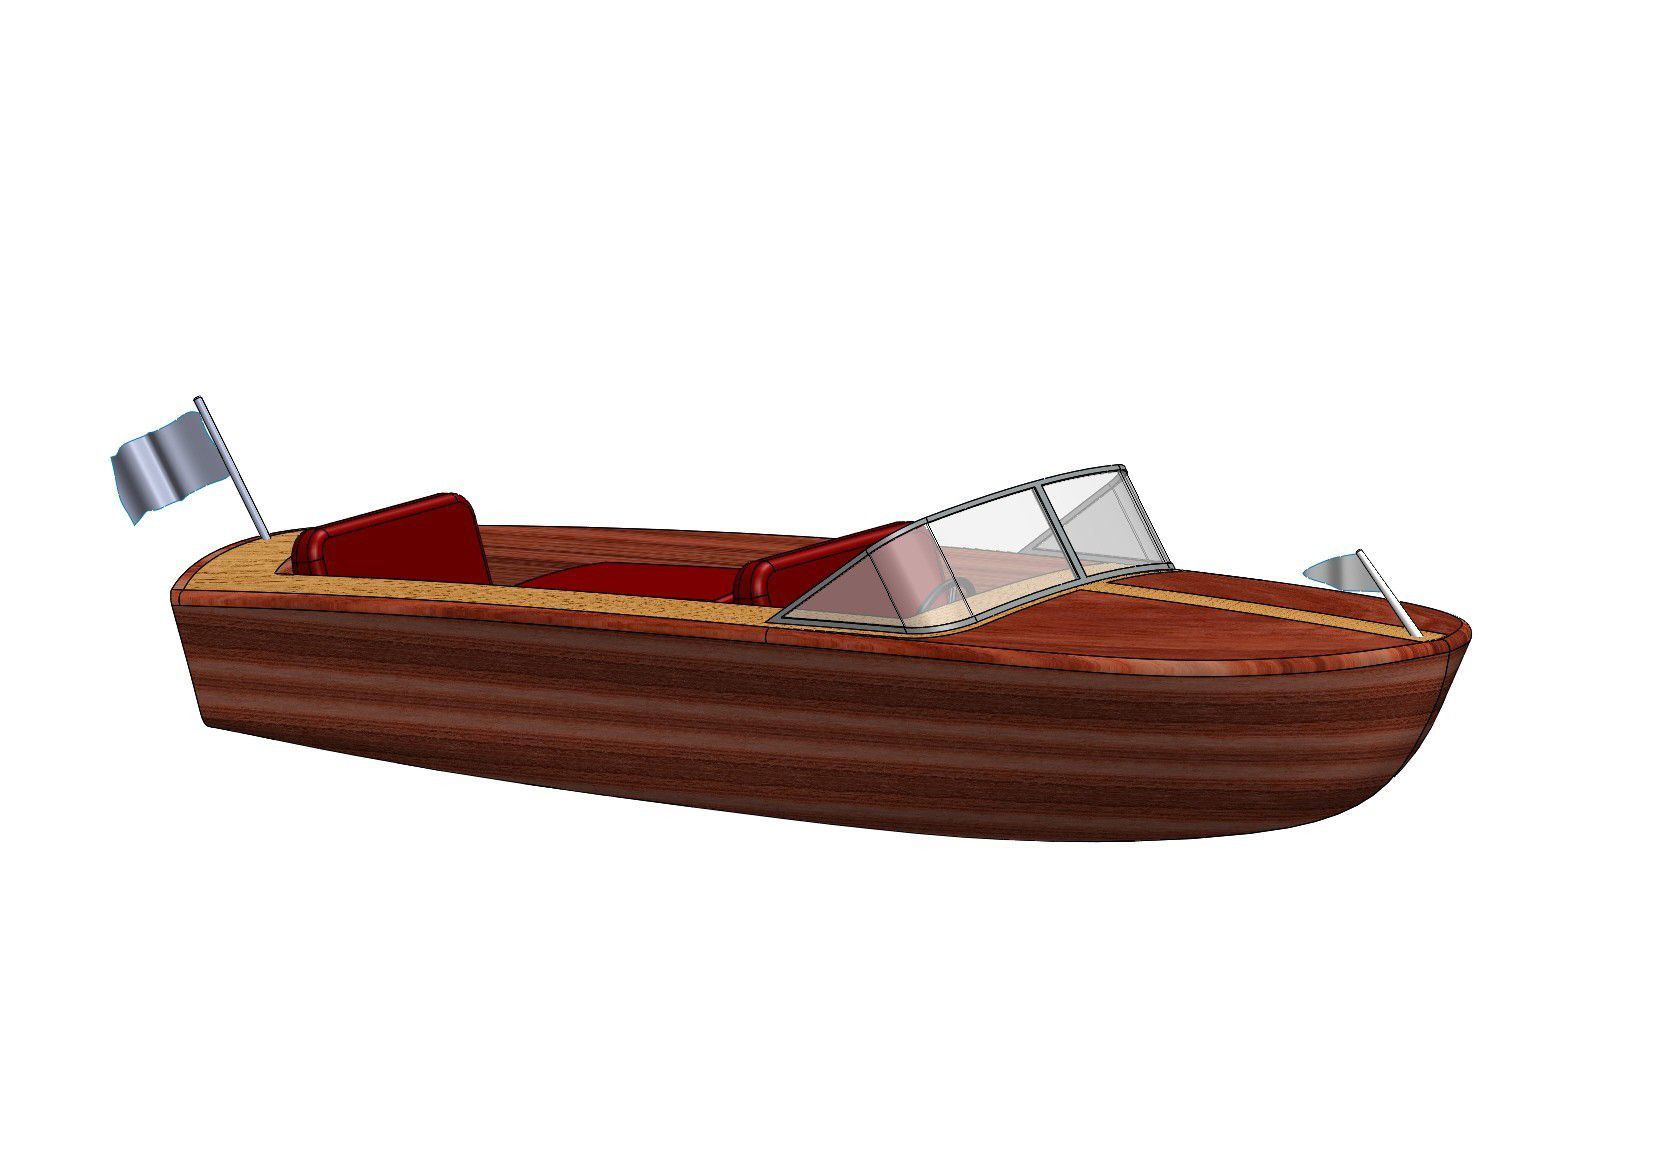 SWPR-ToyBoat B.JPG Download STL file BOAT RIVA TOY BOAT • 3D print template, Laurence